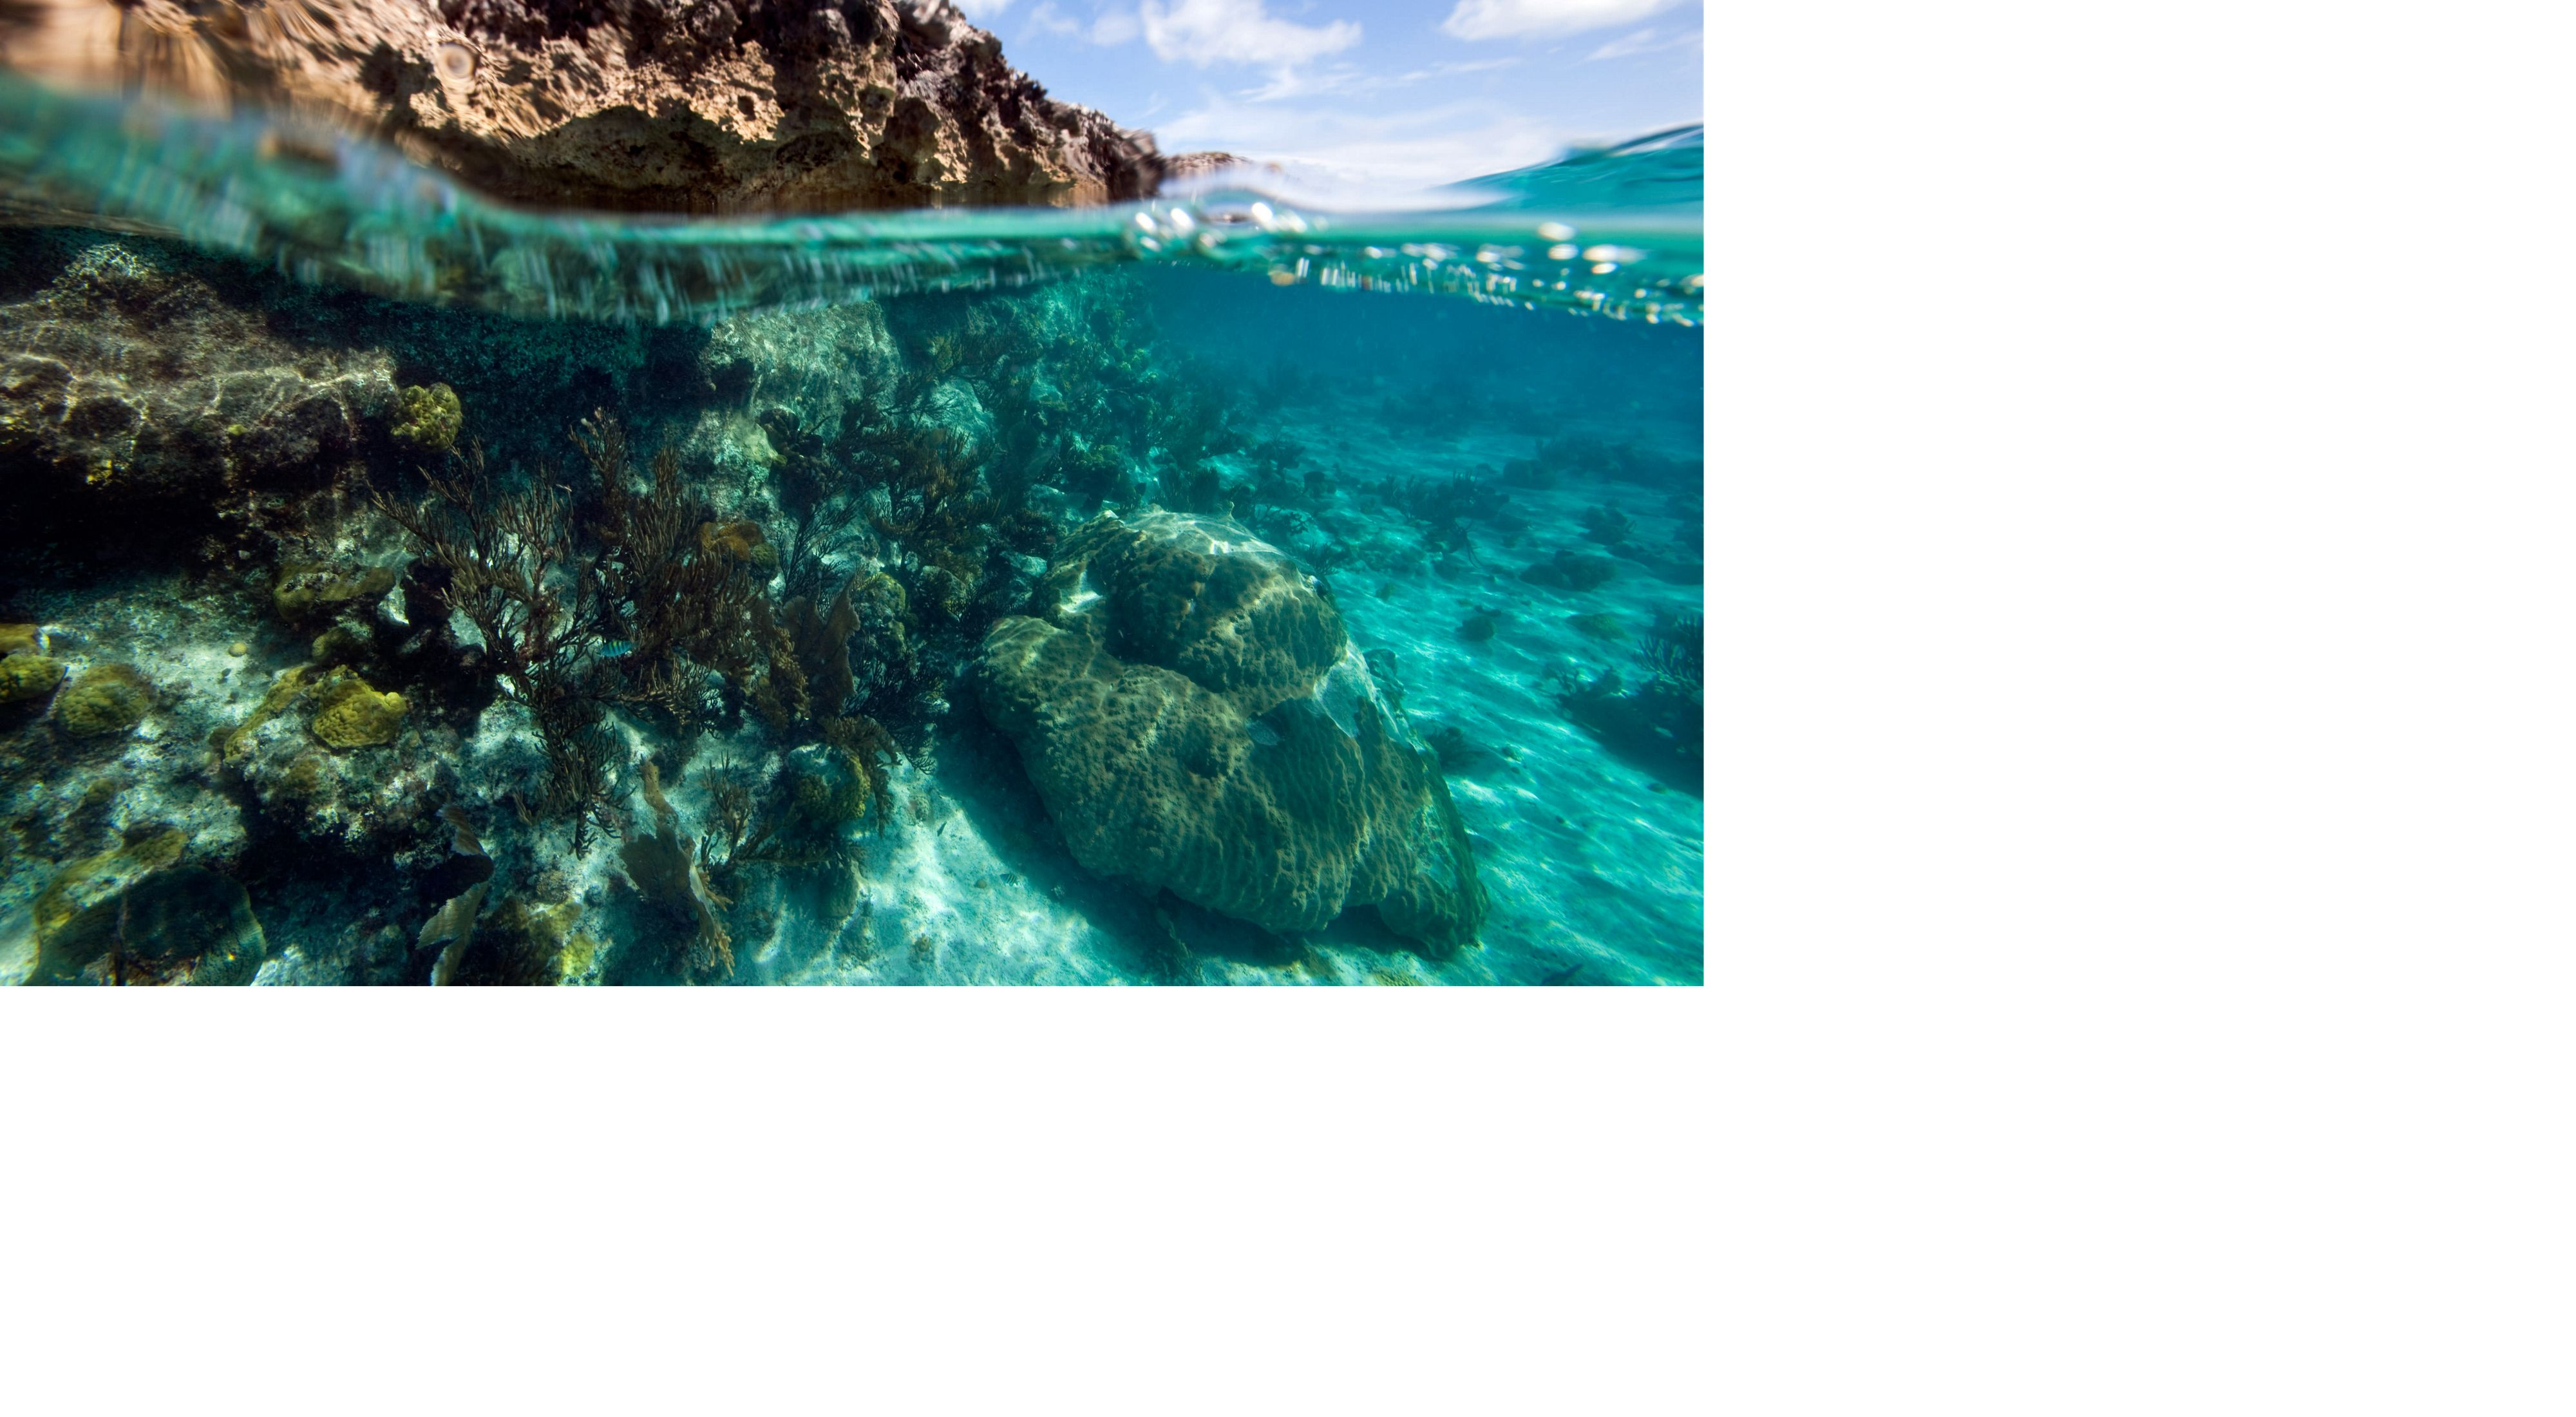 Shallow reef and limestone Islet in Exuma Cays Land and Sea Park, Bahamas.